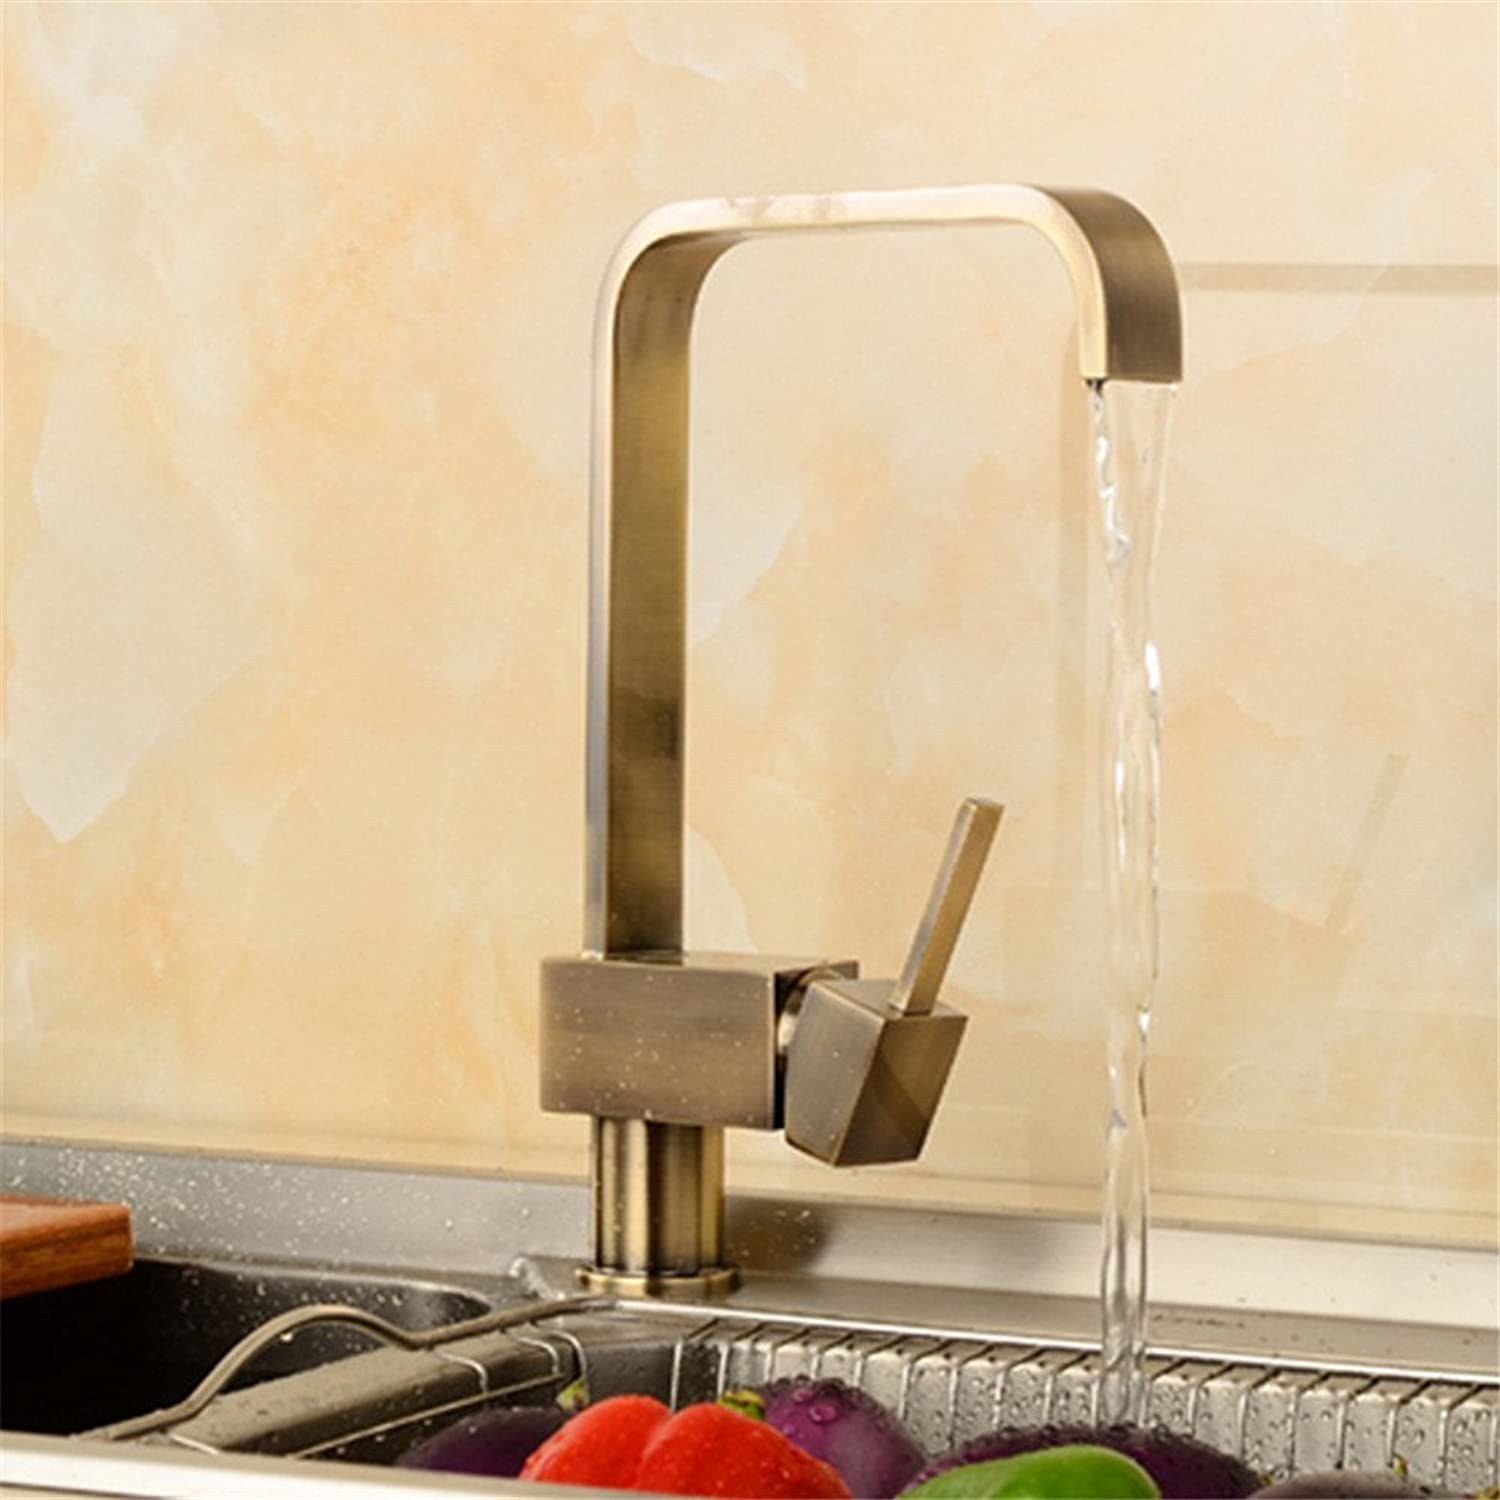 Commercial Single Lever Pull Down Kitchen Sink Faucet Brass Constructed Polished European -?Style?Copper Antique Kitchen Four Way redating ?Hot and Cold Water Faucet